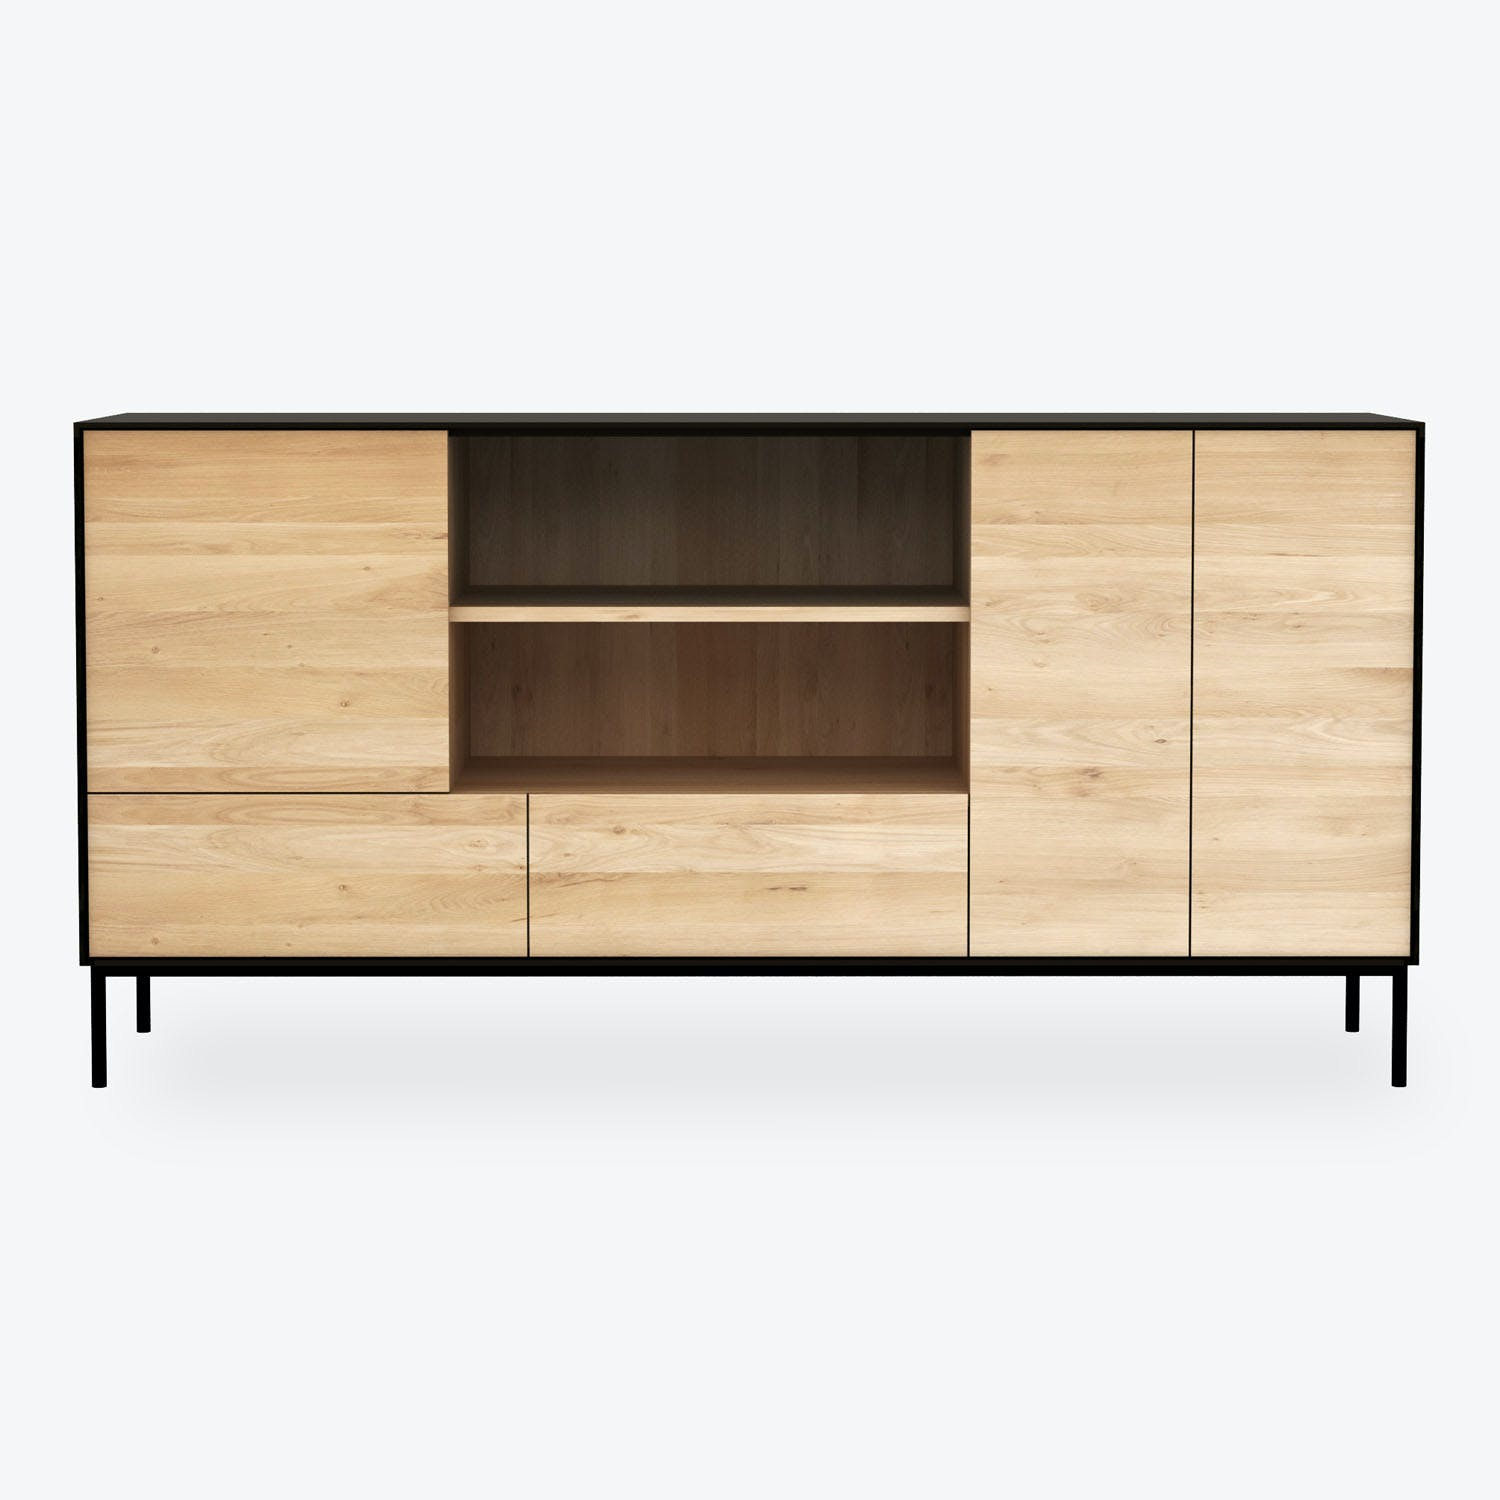 Product Image - Blackbird Two Drawer Sideboard